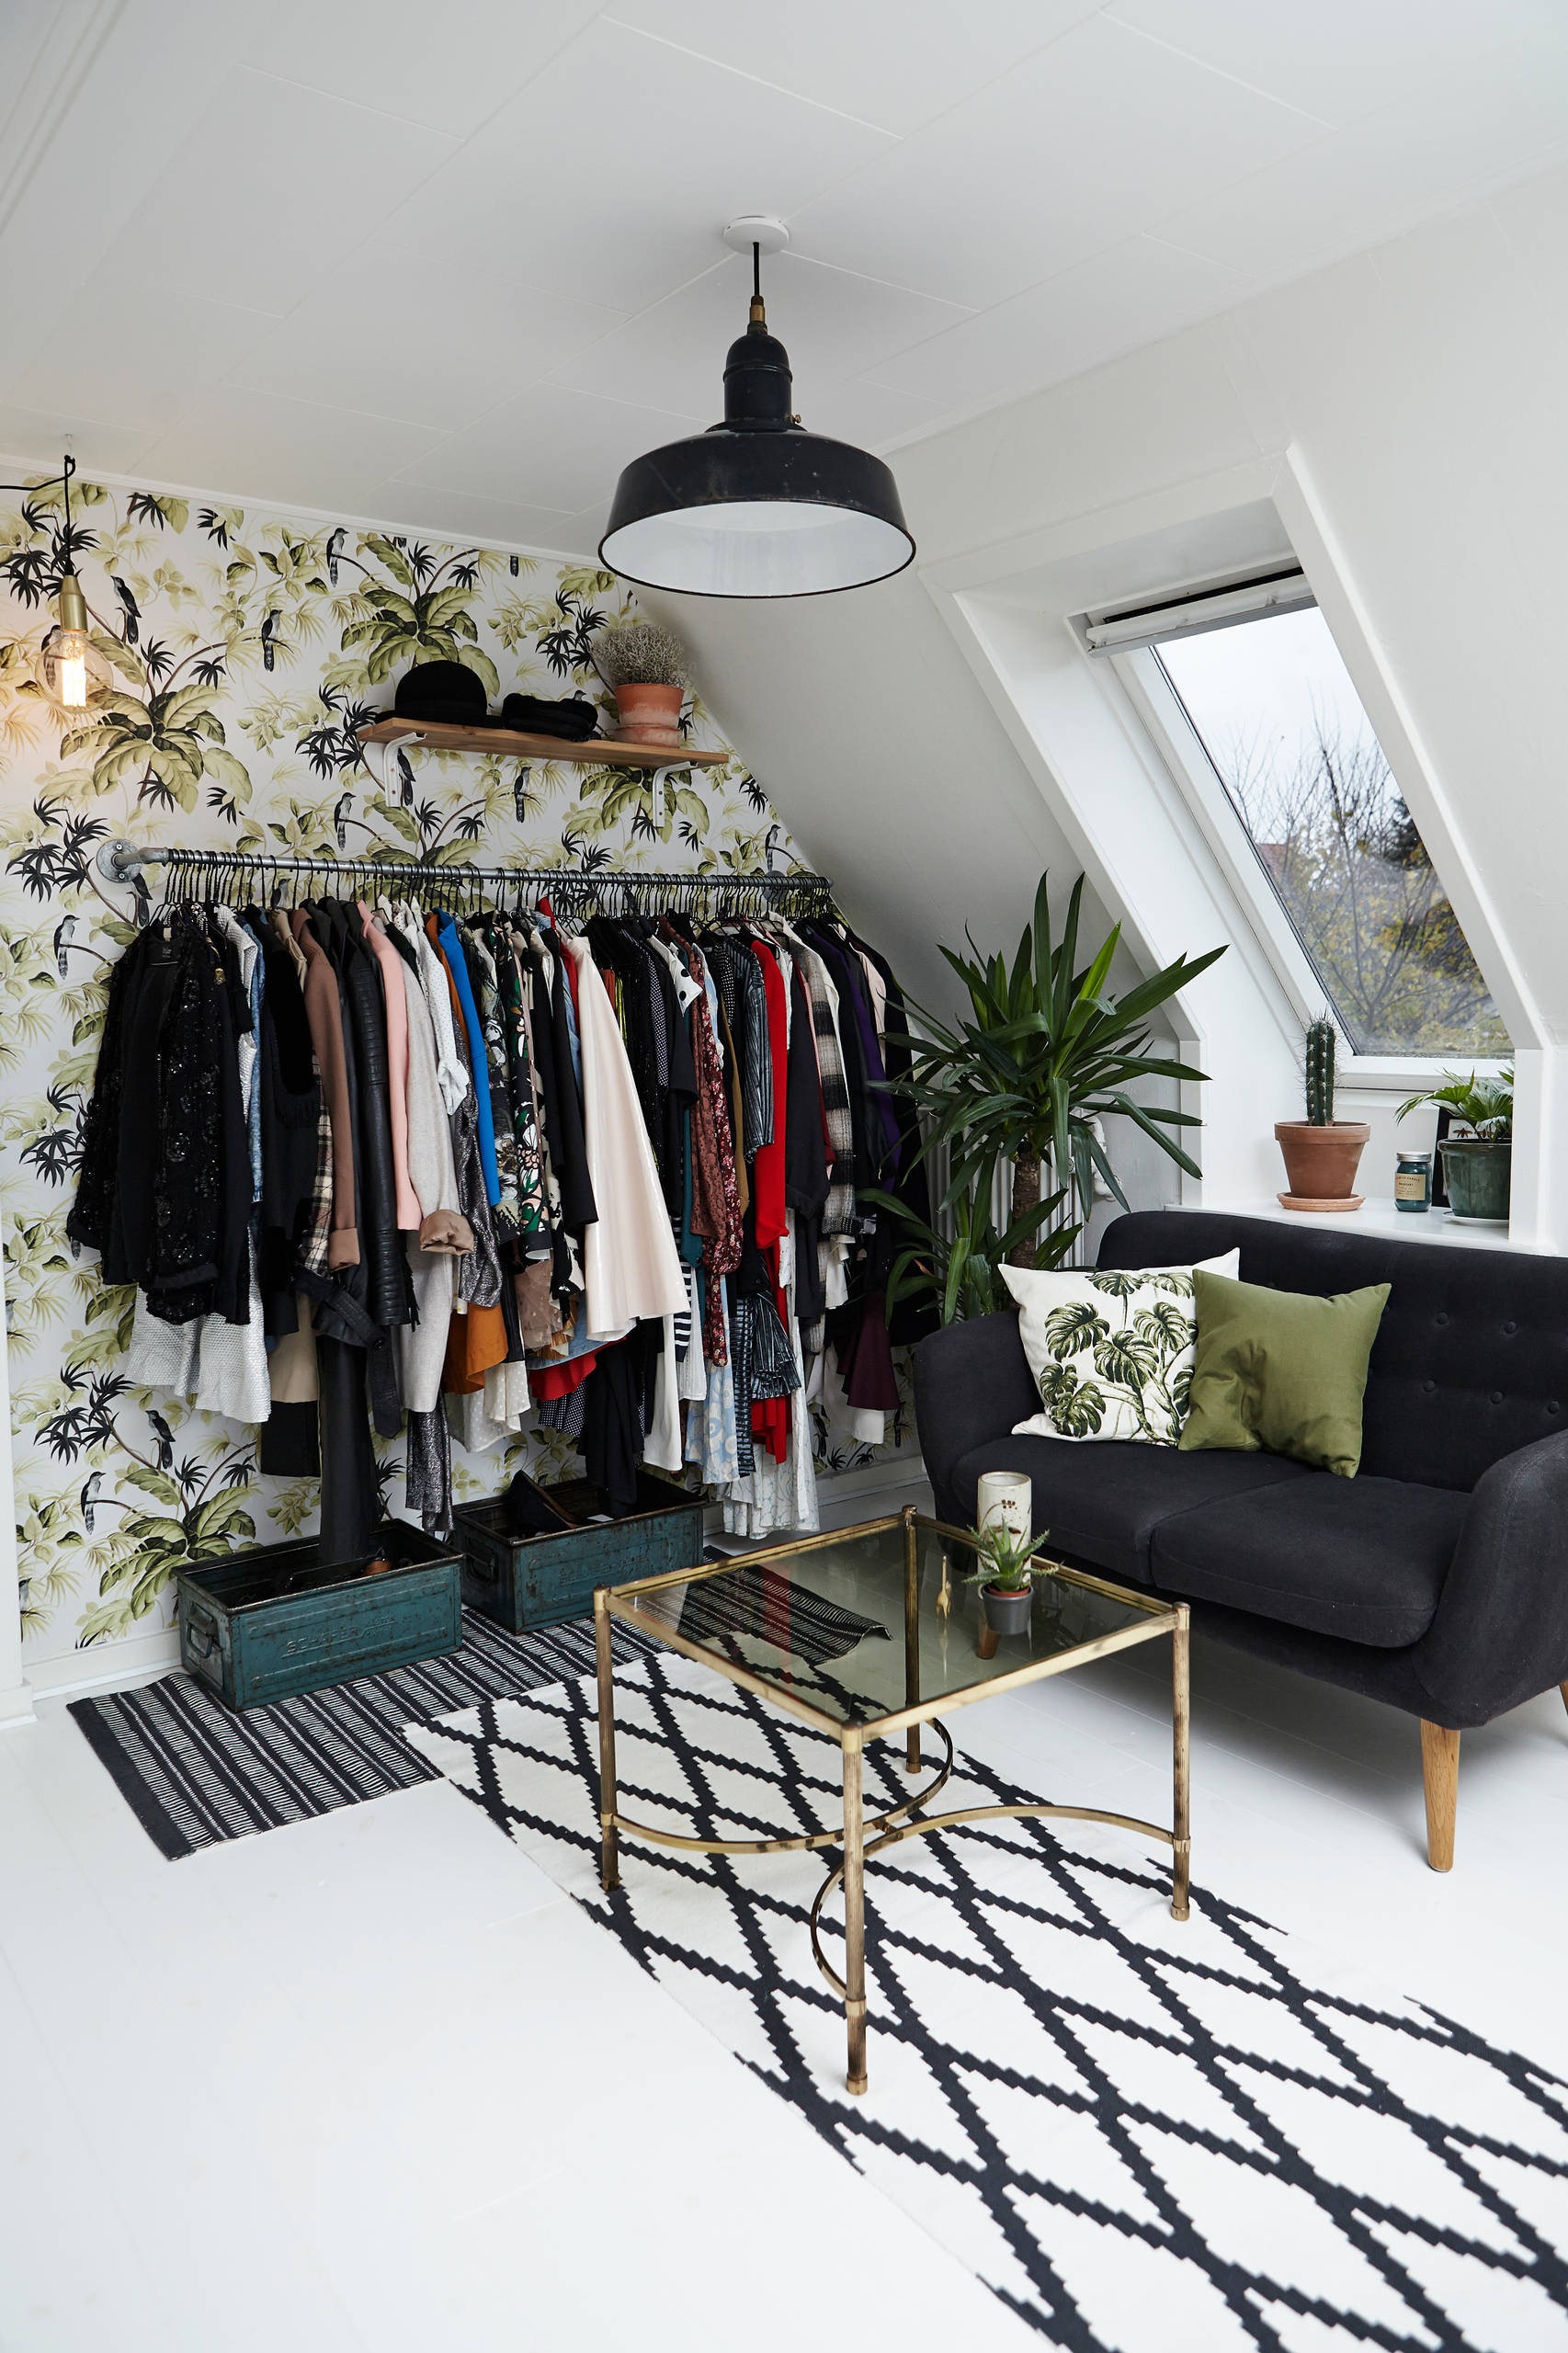 Wallpaper in the backdrop adds color to the standalone closet unit